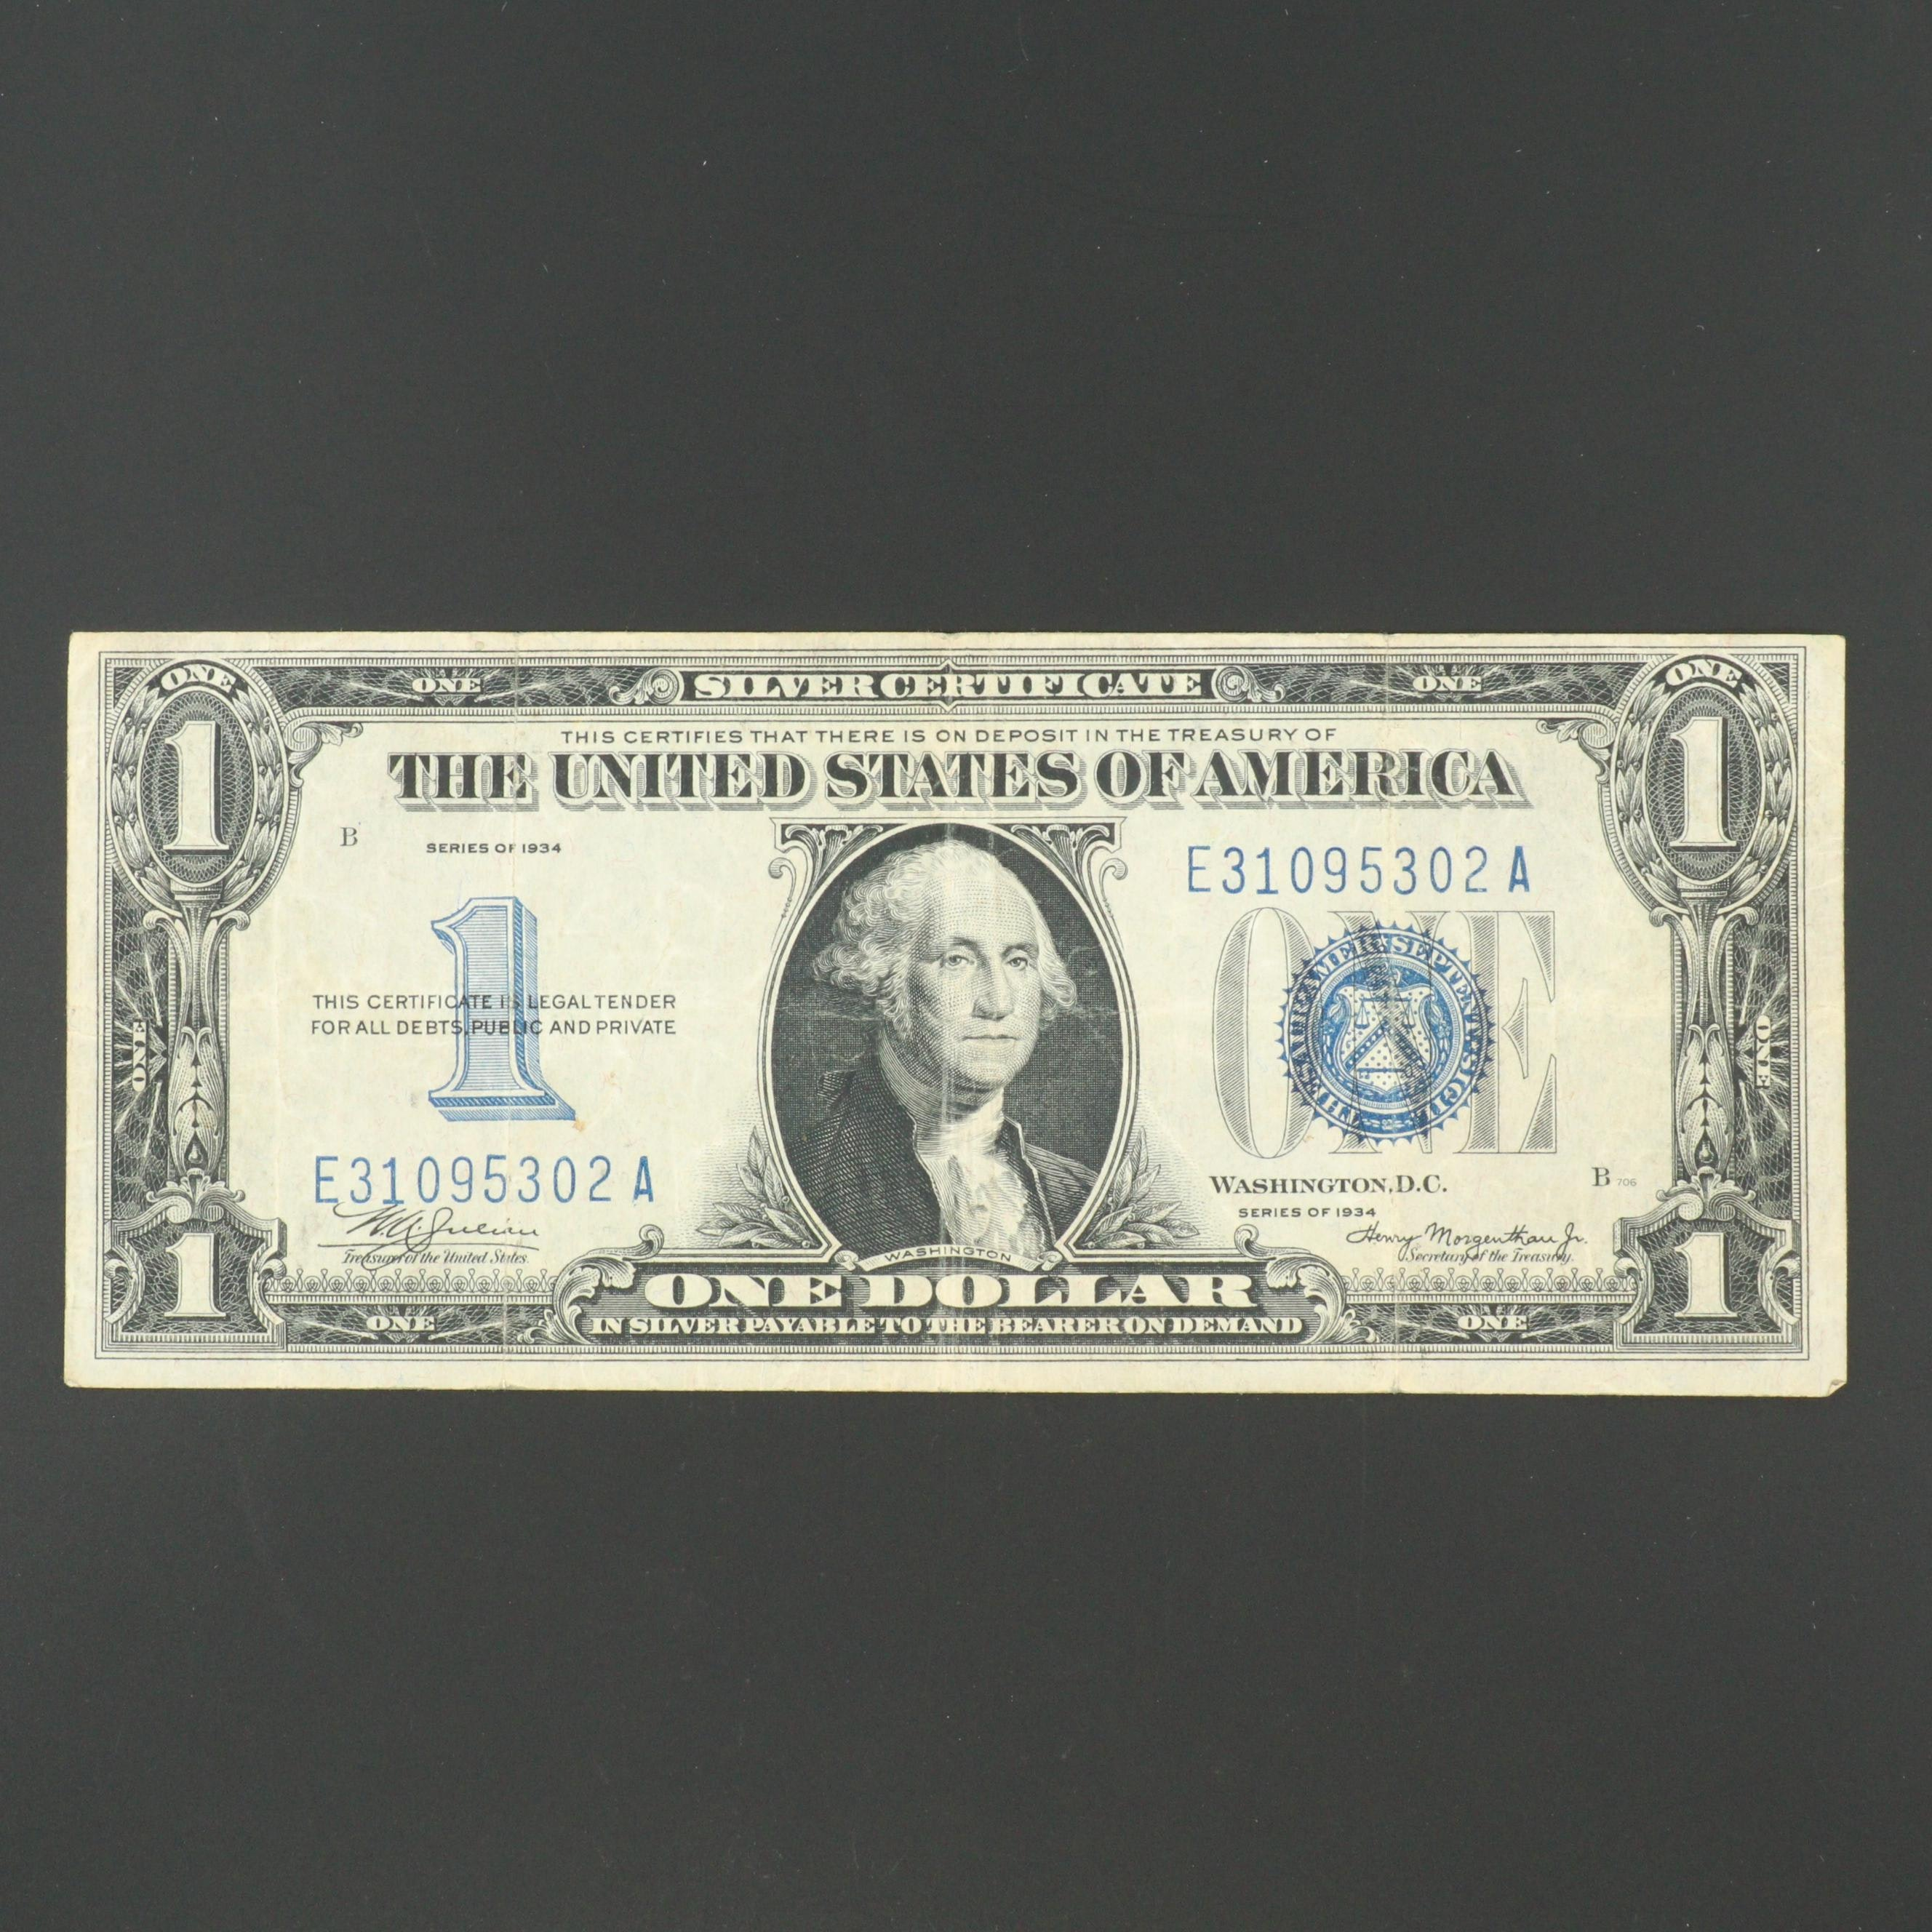 Series of 1934 U.S. $1 Silver Cerificate